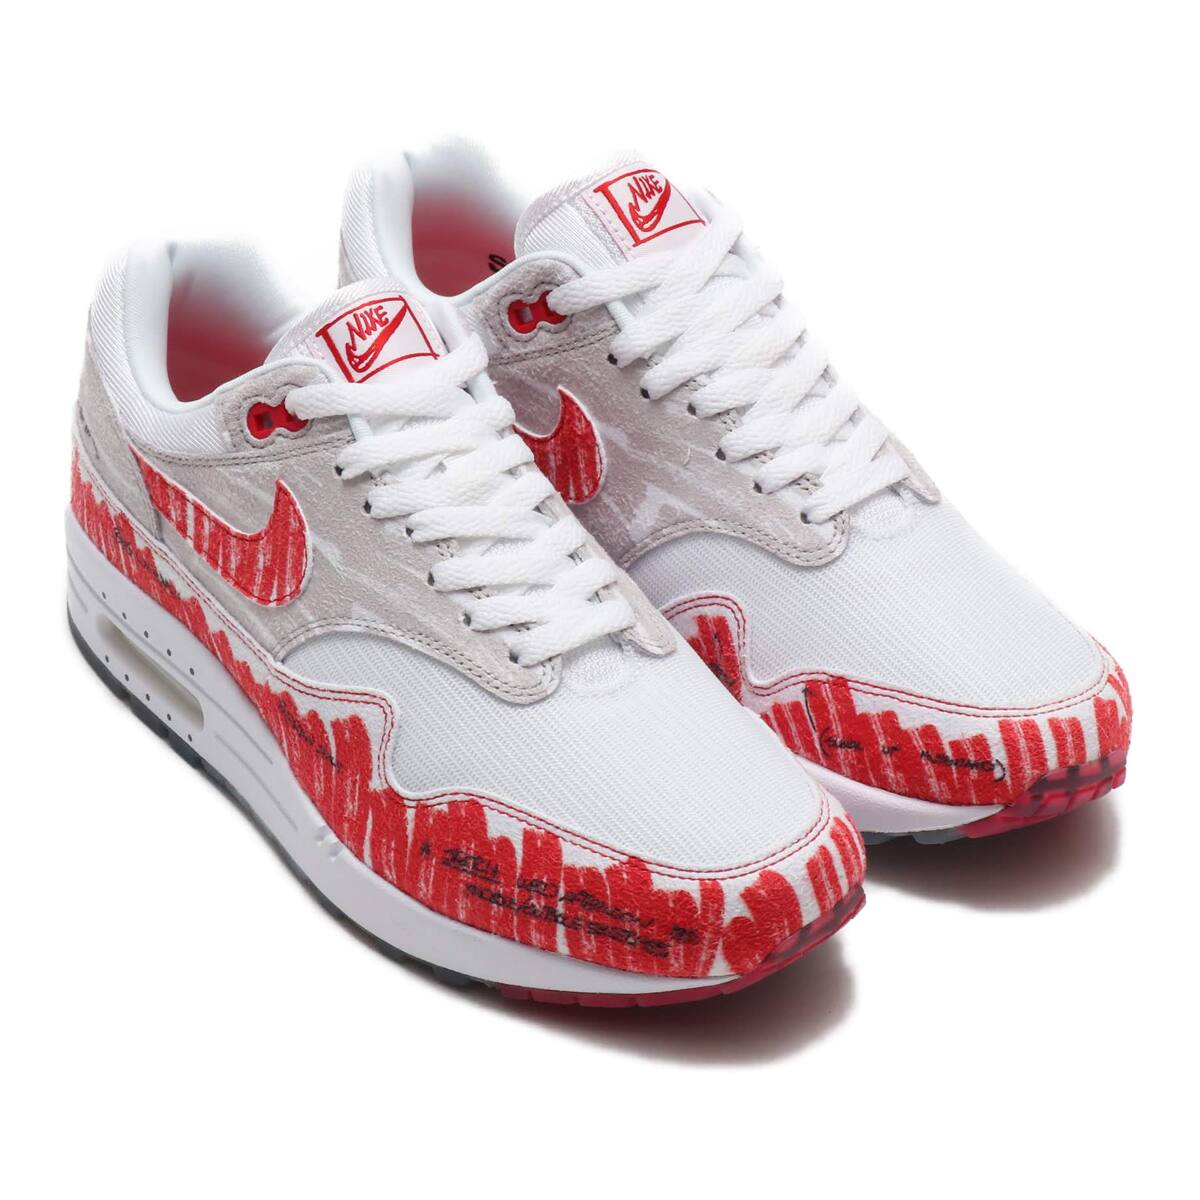 NIKE AIR MAX 1 SKETCH TO SHELF WHITE/UNIVERSITY RED-NEUTRAL GREY 19FA-S_photo_large